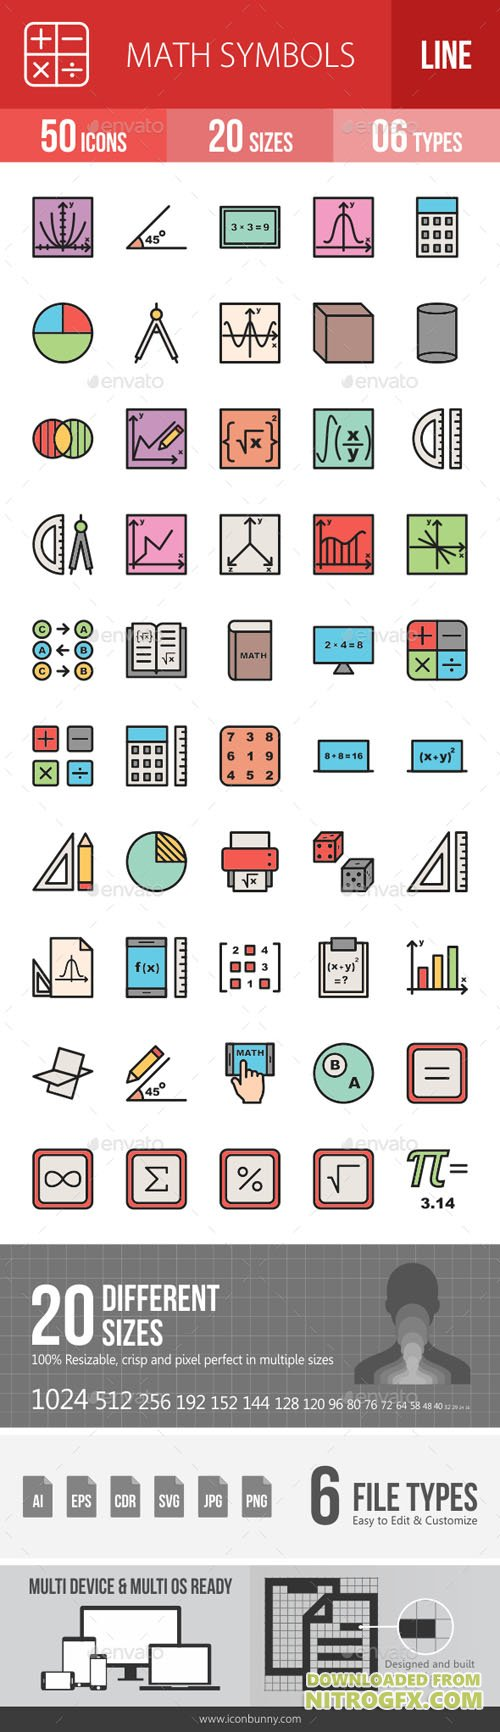 Math Symbols Line Filled Icons 19260184